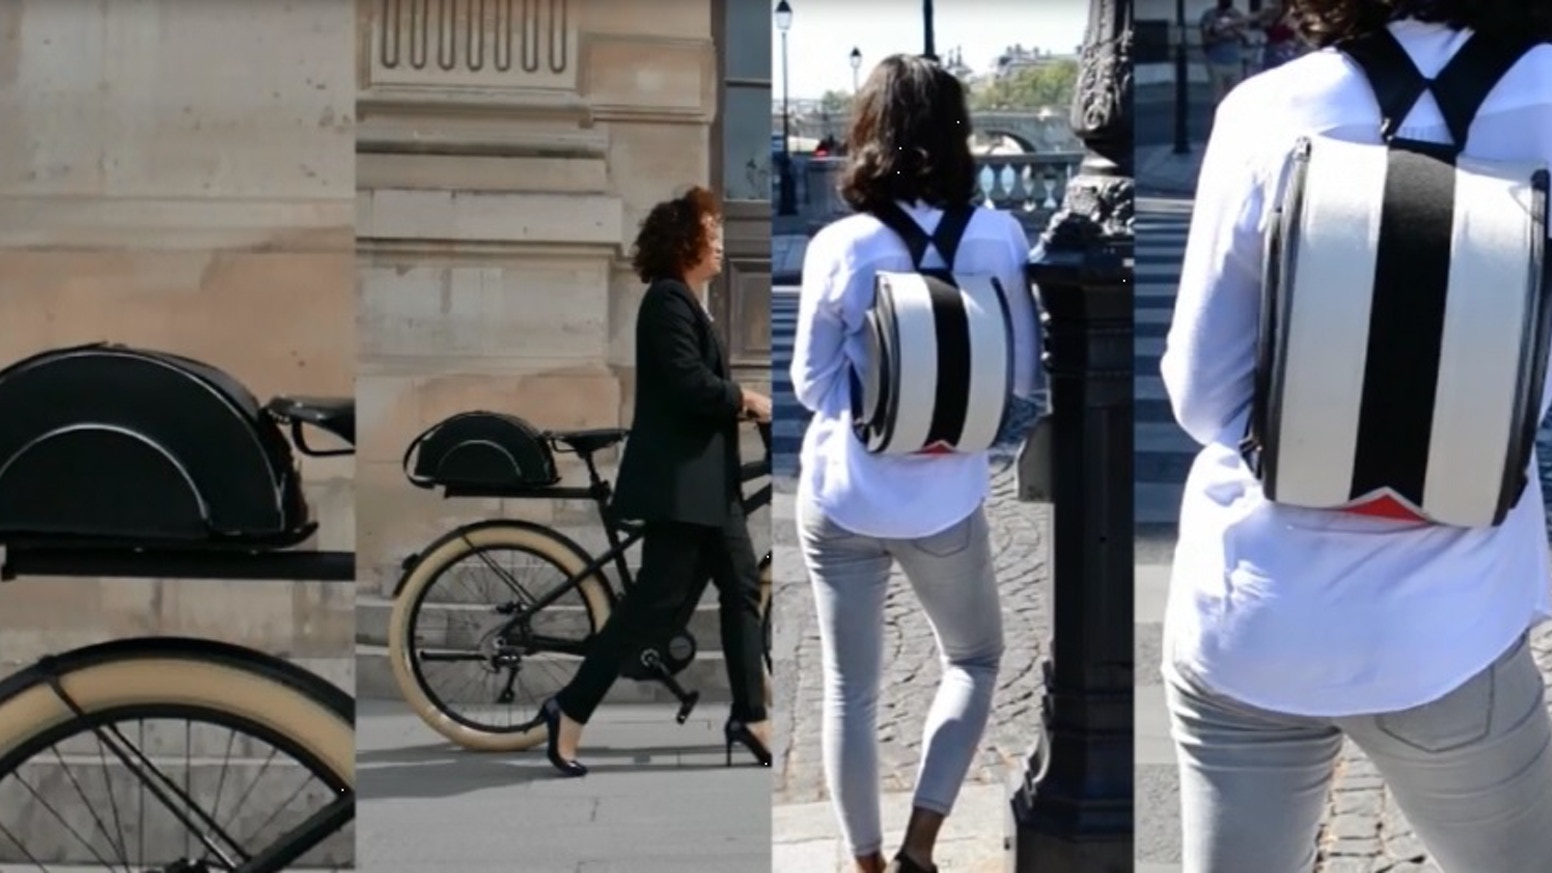 A cycling bag designed for urban cyclists and pedestrians. Walk with a backpack and cycle with it like a panier that reflects light !